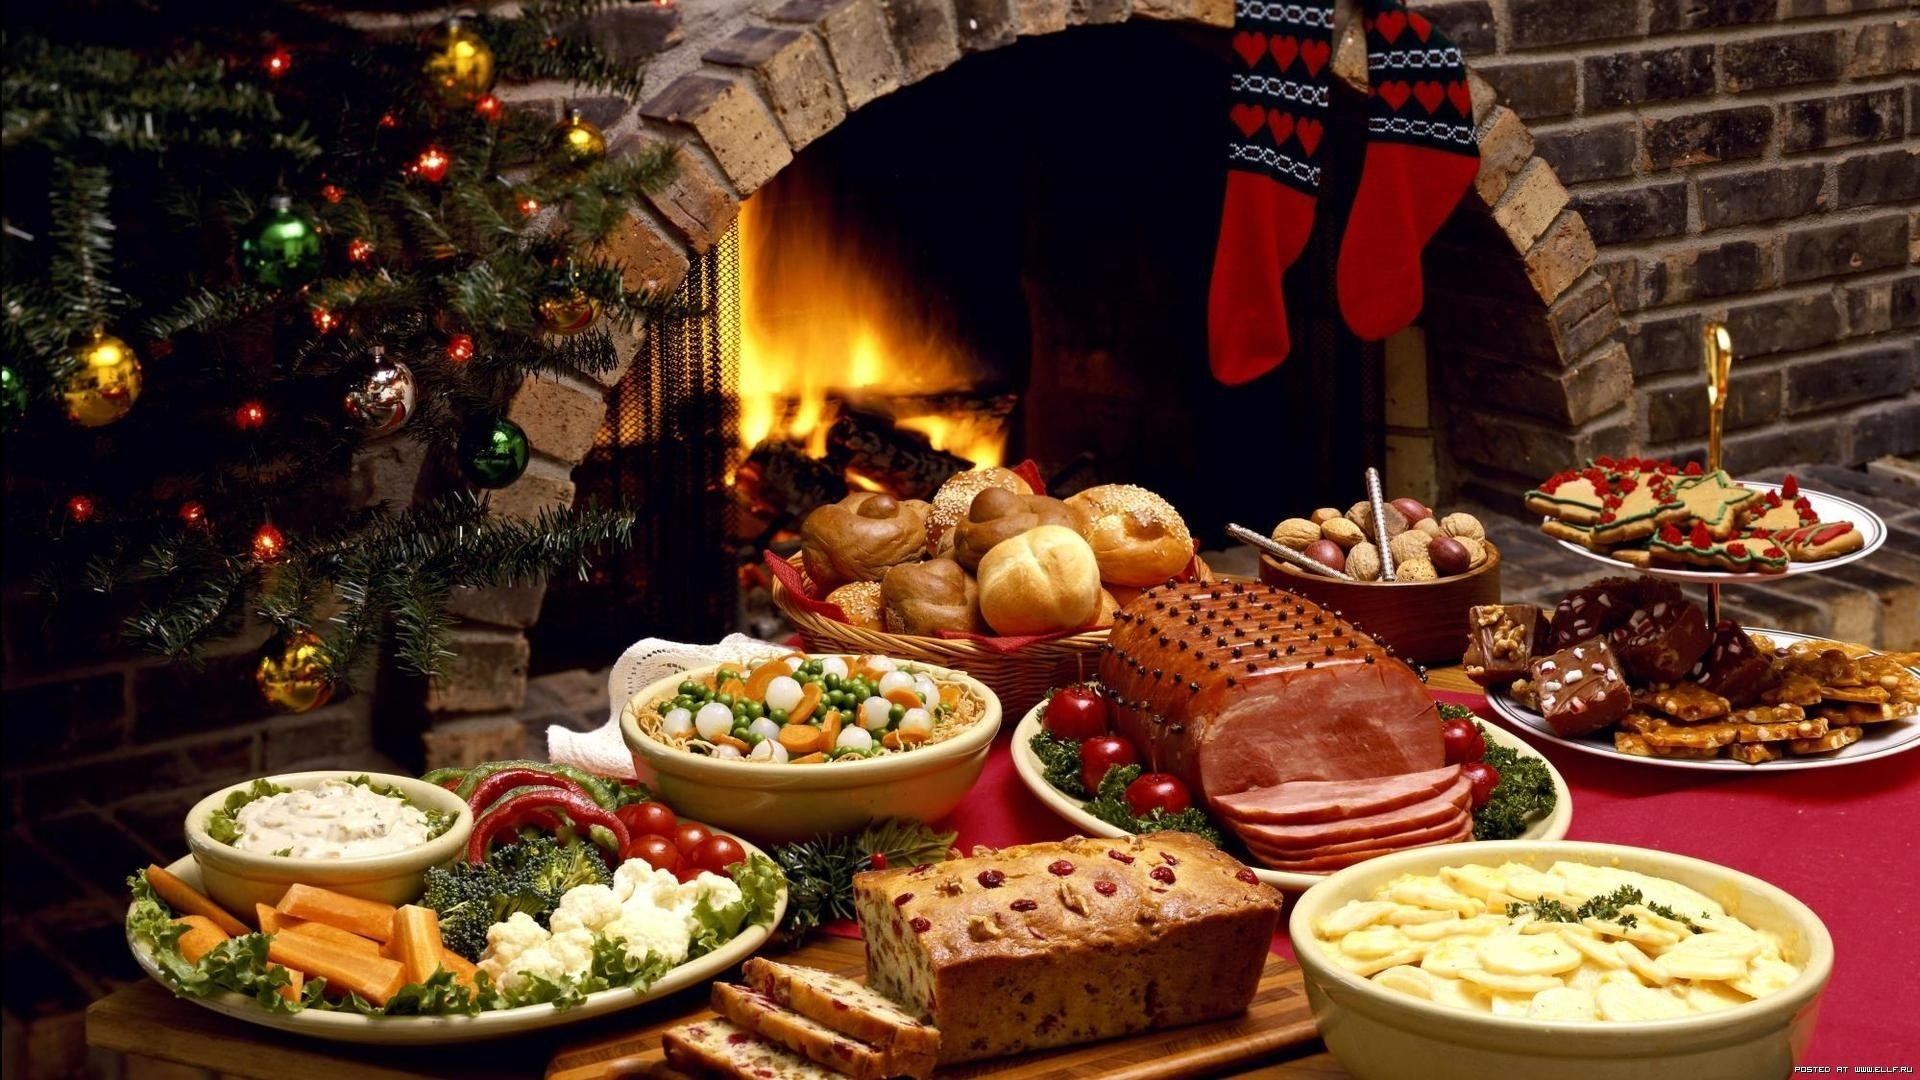 19100 download wallpaper Holidays, Food, New Year, Christmas, Xmas screensavers and pictures for free